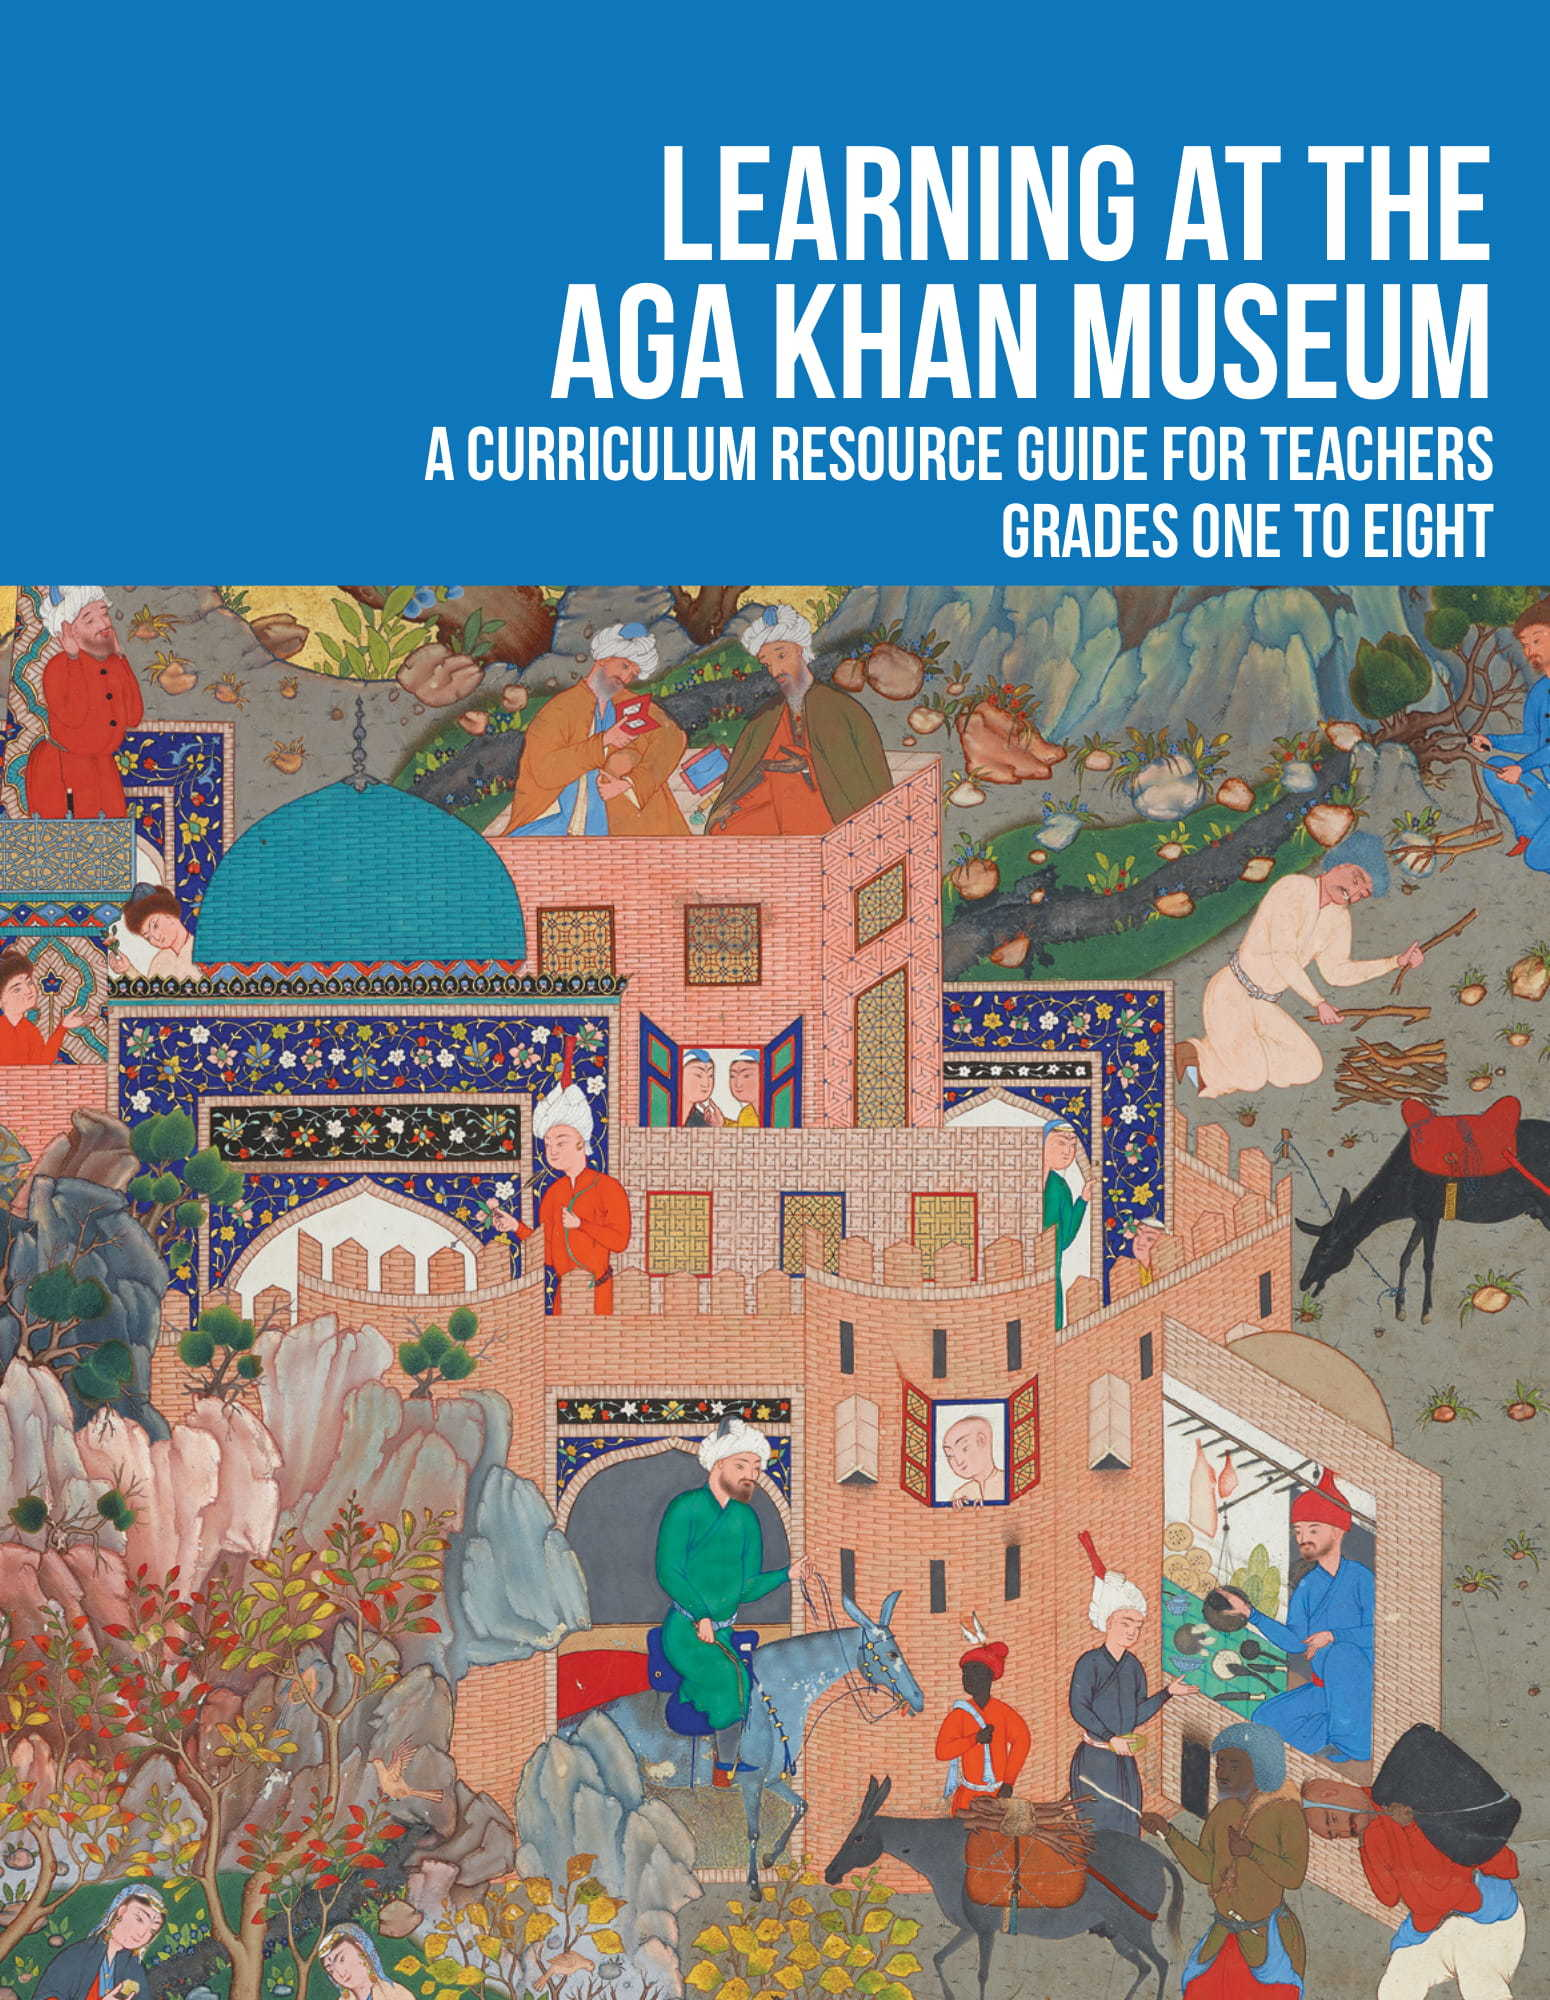 Learning at the Aga Khan Museum: A curriculum resource guide for teachers grades one to eight